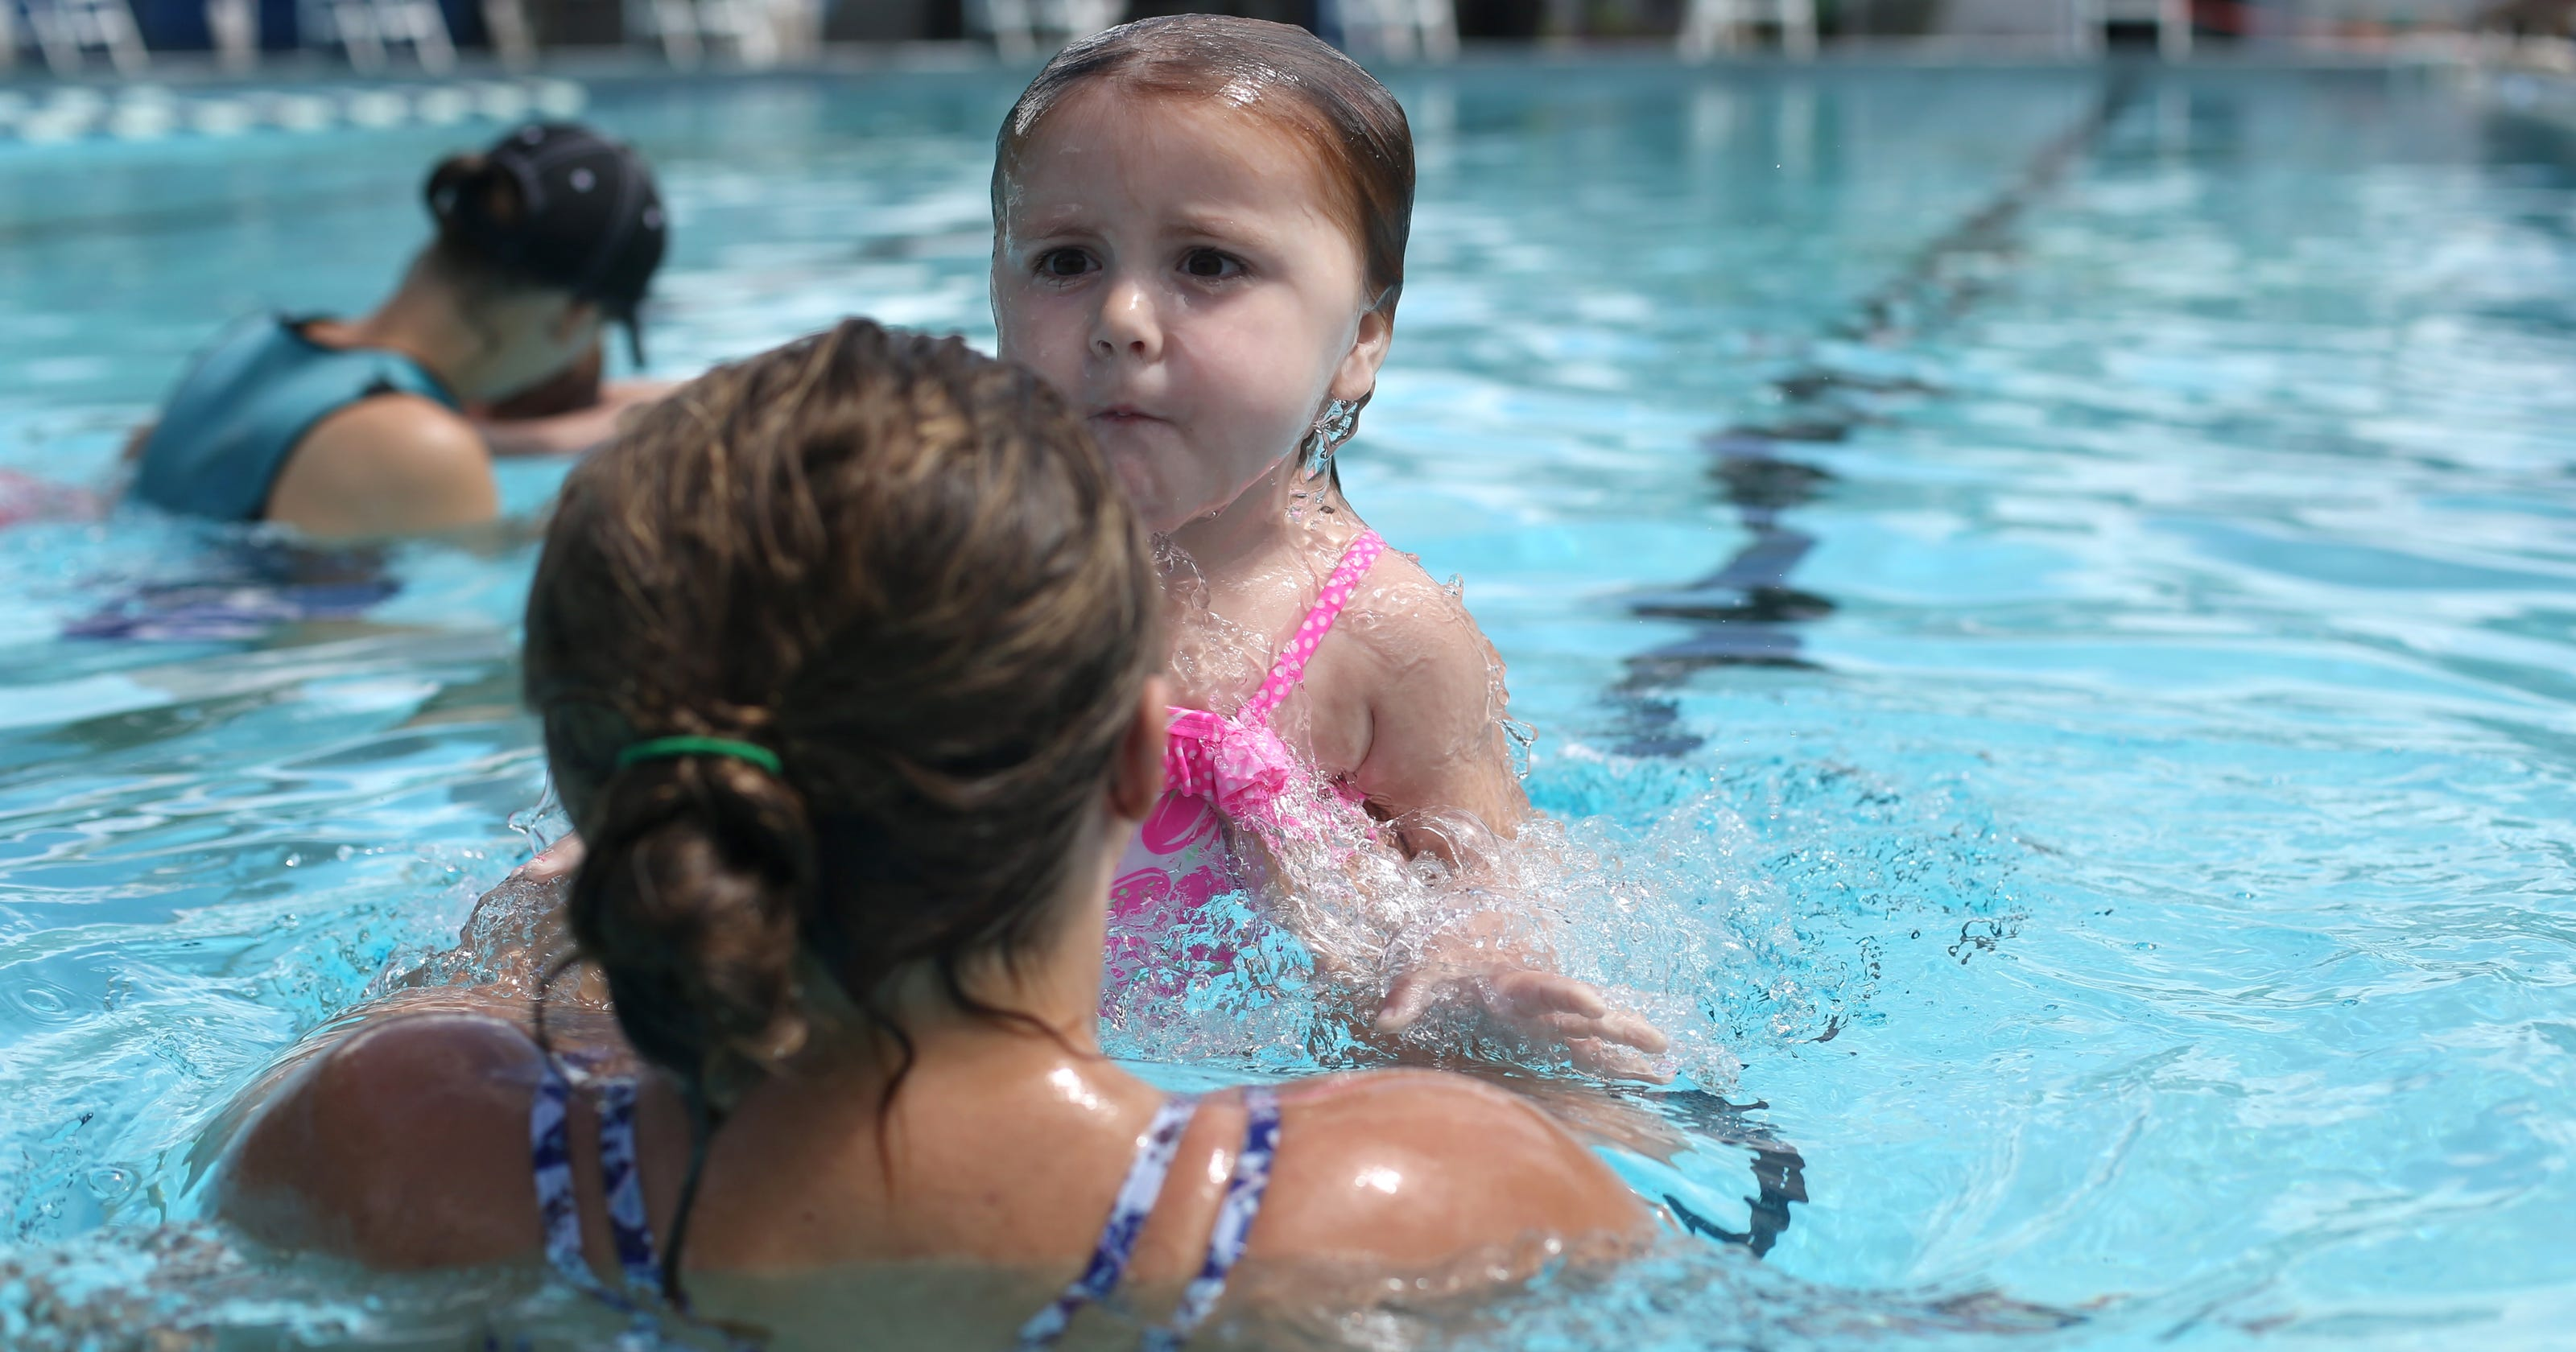 a13952fdb29a Pool school  How to choose swimming lessons in Tallahassee